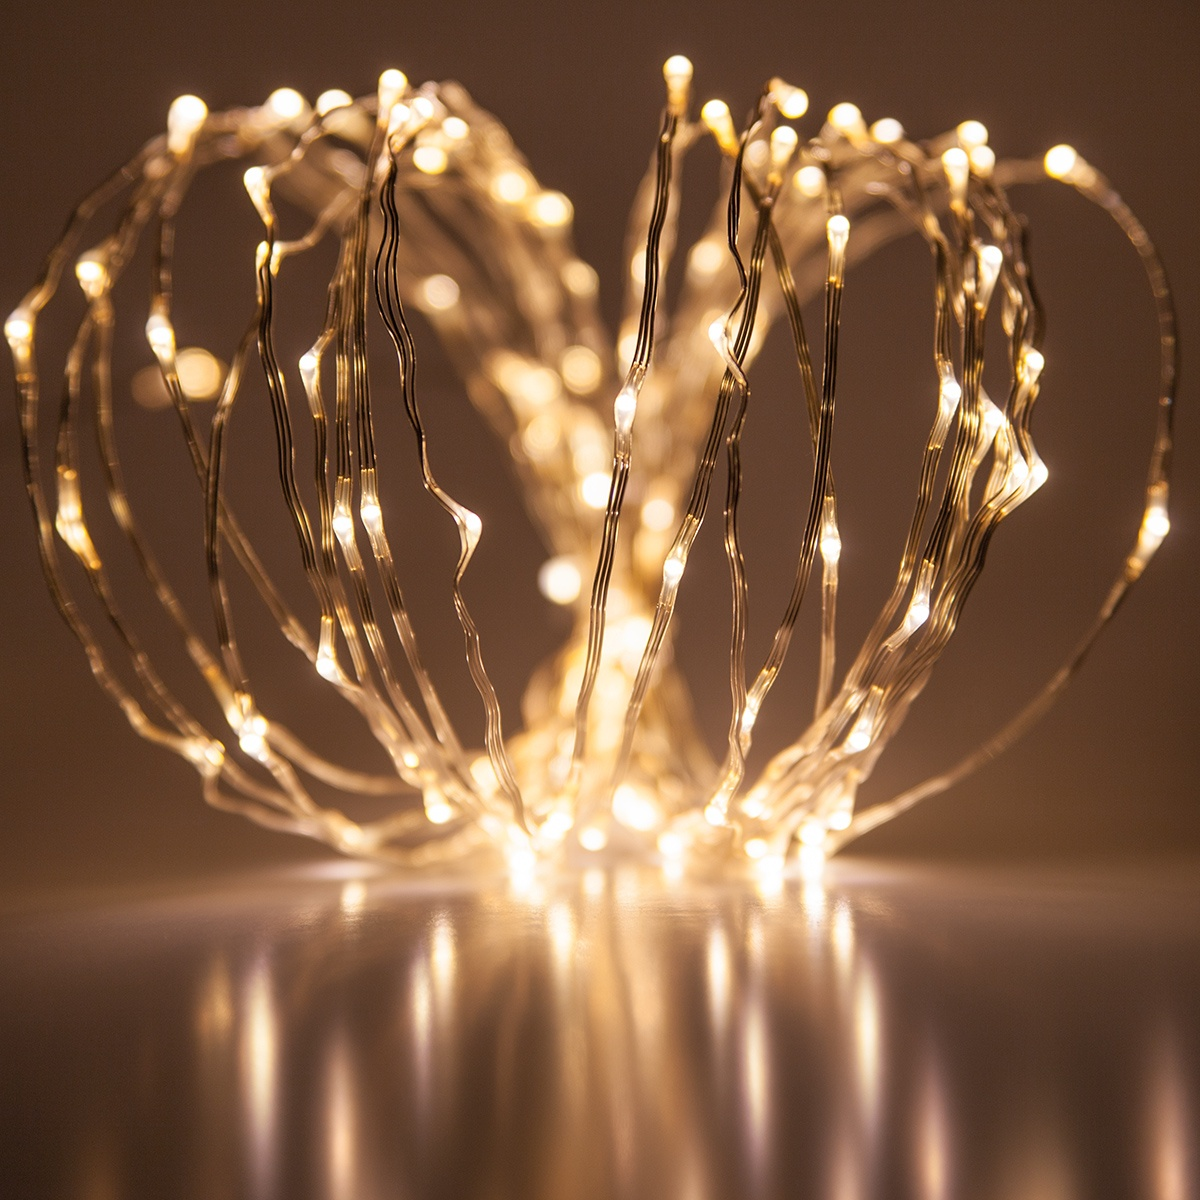 Novelty Lights 20 Warm White Led Fairy Light String